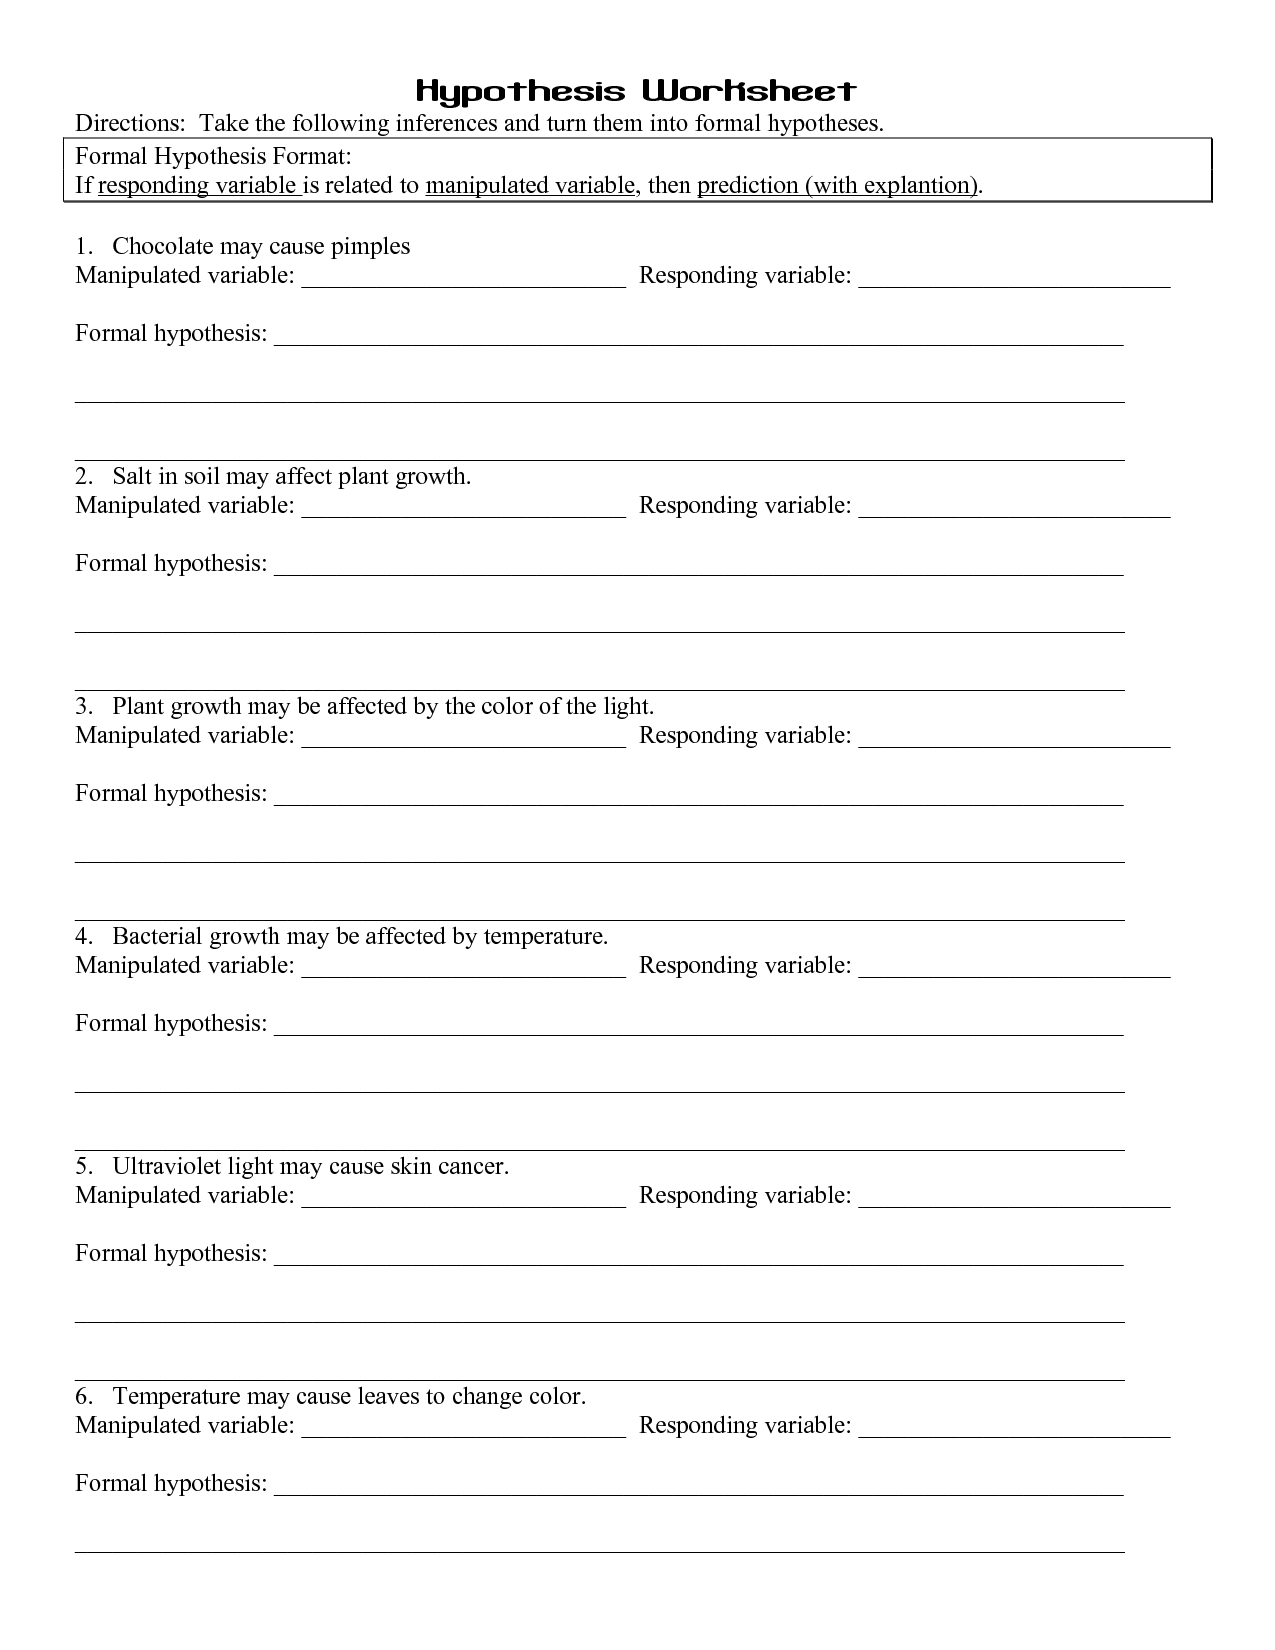 49 Hypothesis Worksheet, Ag Science  Hypothesis Worksheet Answers